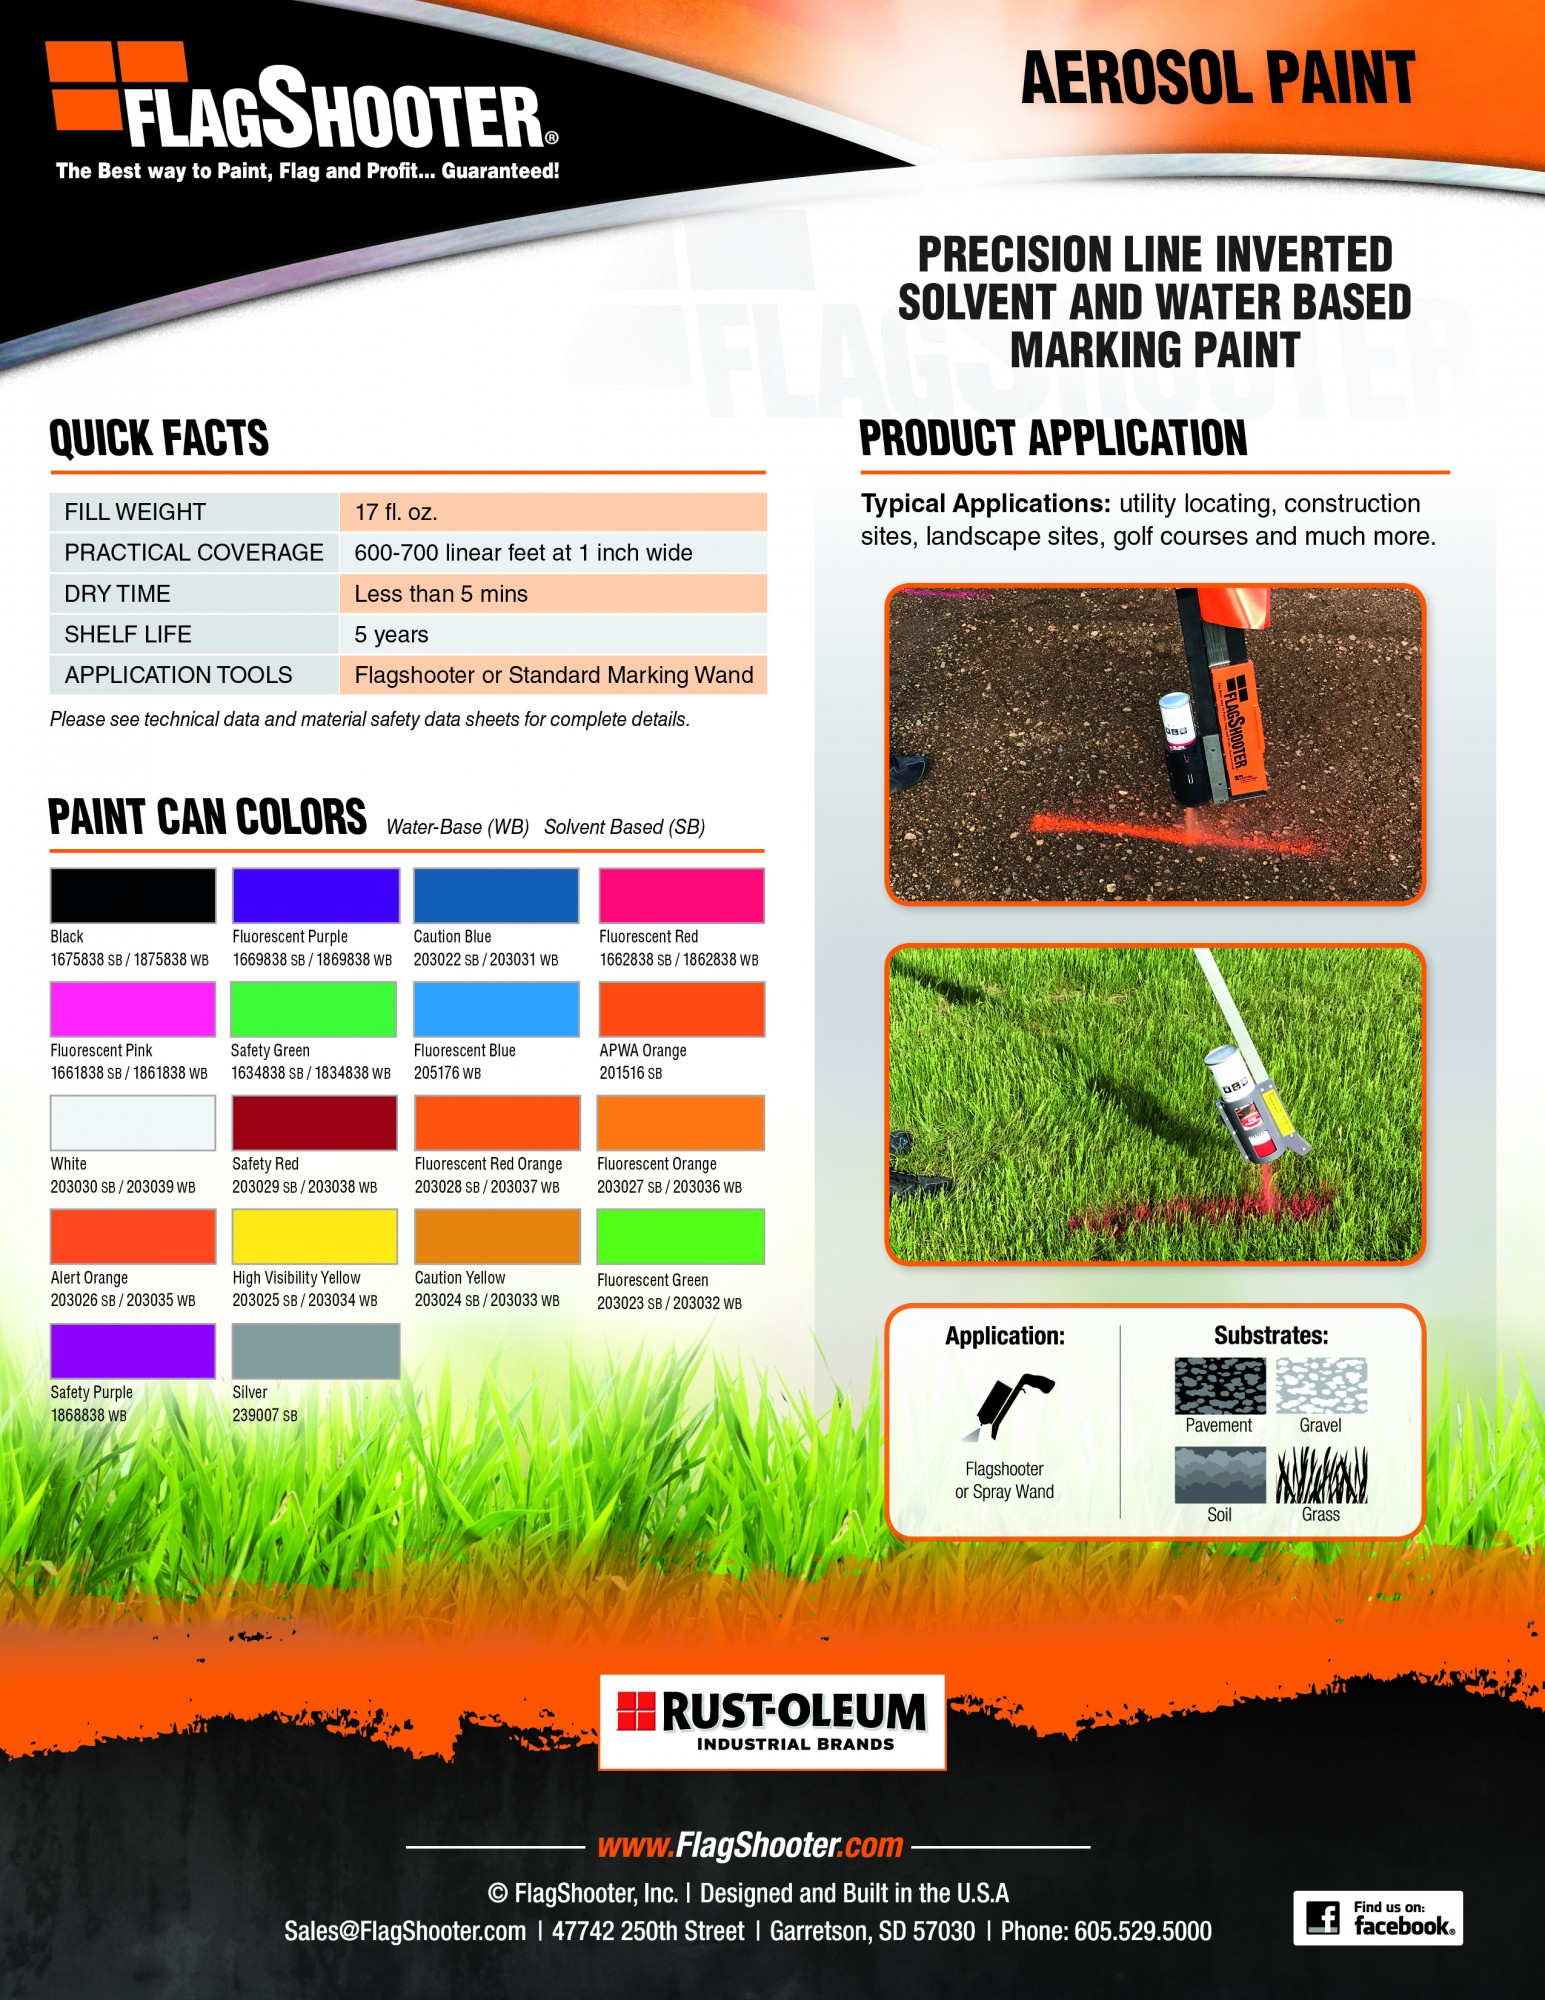 Aerosol Marking Paint for your Flagshooter